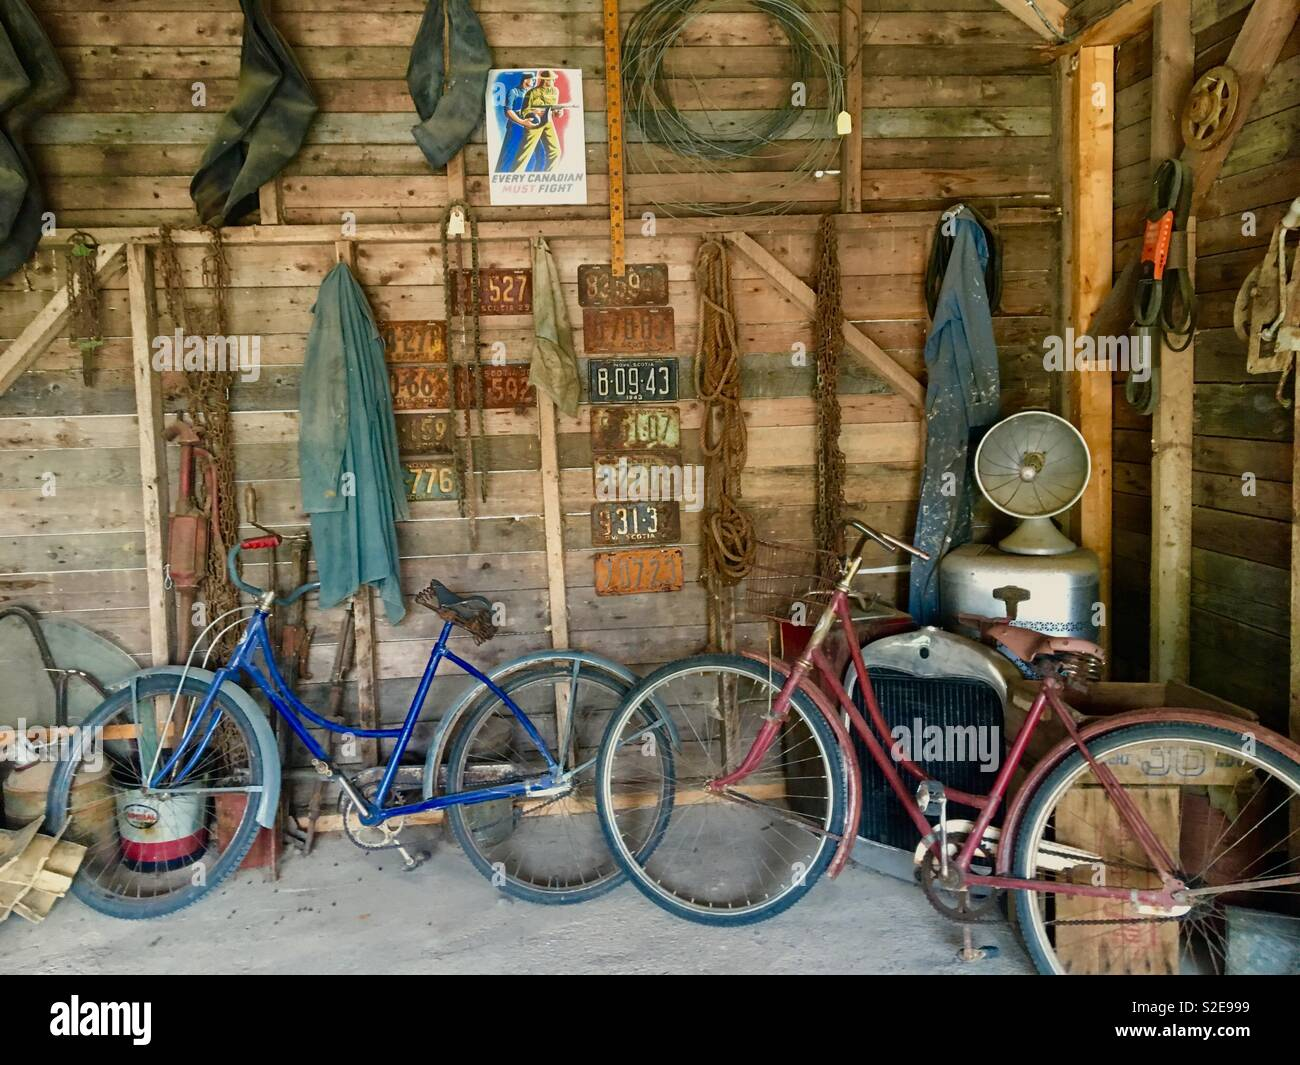 Old garage with old bicycles and number plates - Stock Image